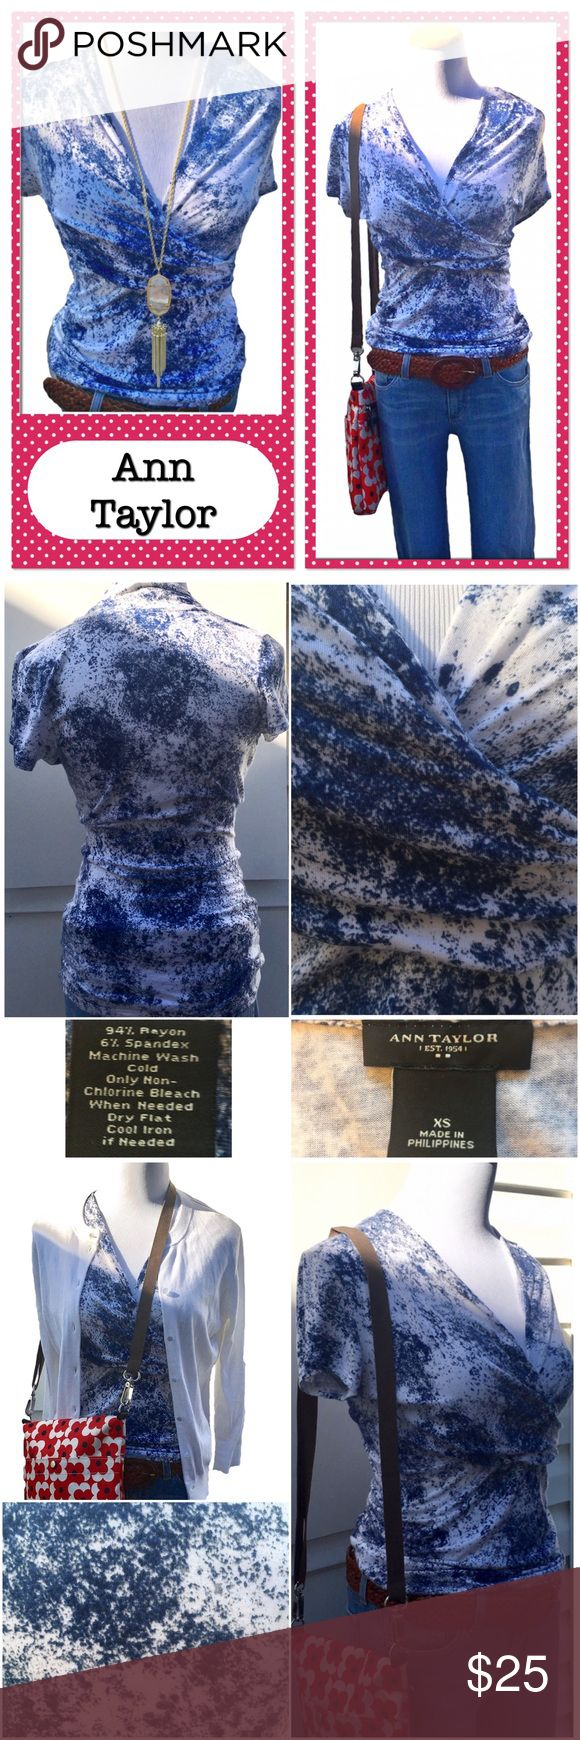 """Ann Taylor Crossover Top Blue & White Short Sleeve This adorable Ann Taylor XS blue and white cross over short sleeve top has a white background with splatters of blue. It's mostly a navy blue. It's in very good used condition with no flaws, stains or pilling. It has some ruching where the top crosses over at the side. 94% rayon, 6% spandex. Machine Wash cold. I love this shirt! Very flattering. Approximate flat measurements: pit to pit 16""""; Length about 26""""  Shown with other listings: Orla…"""